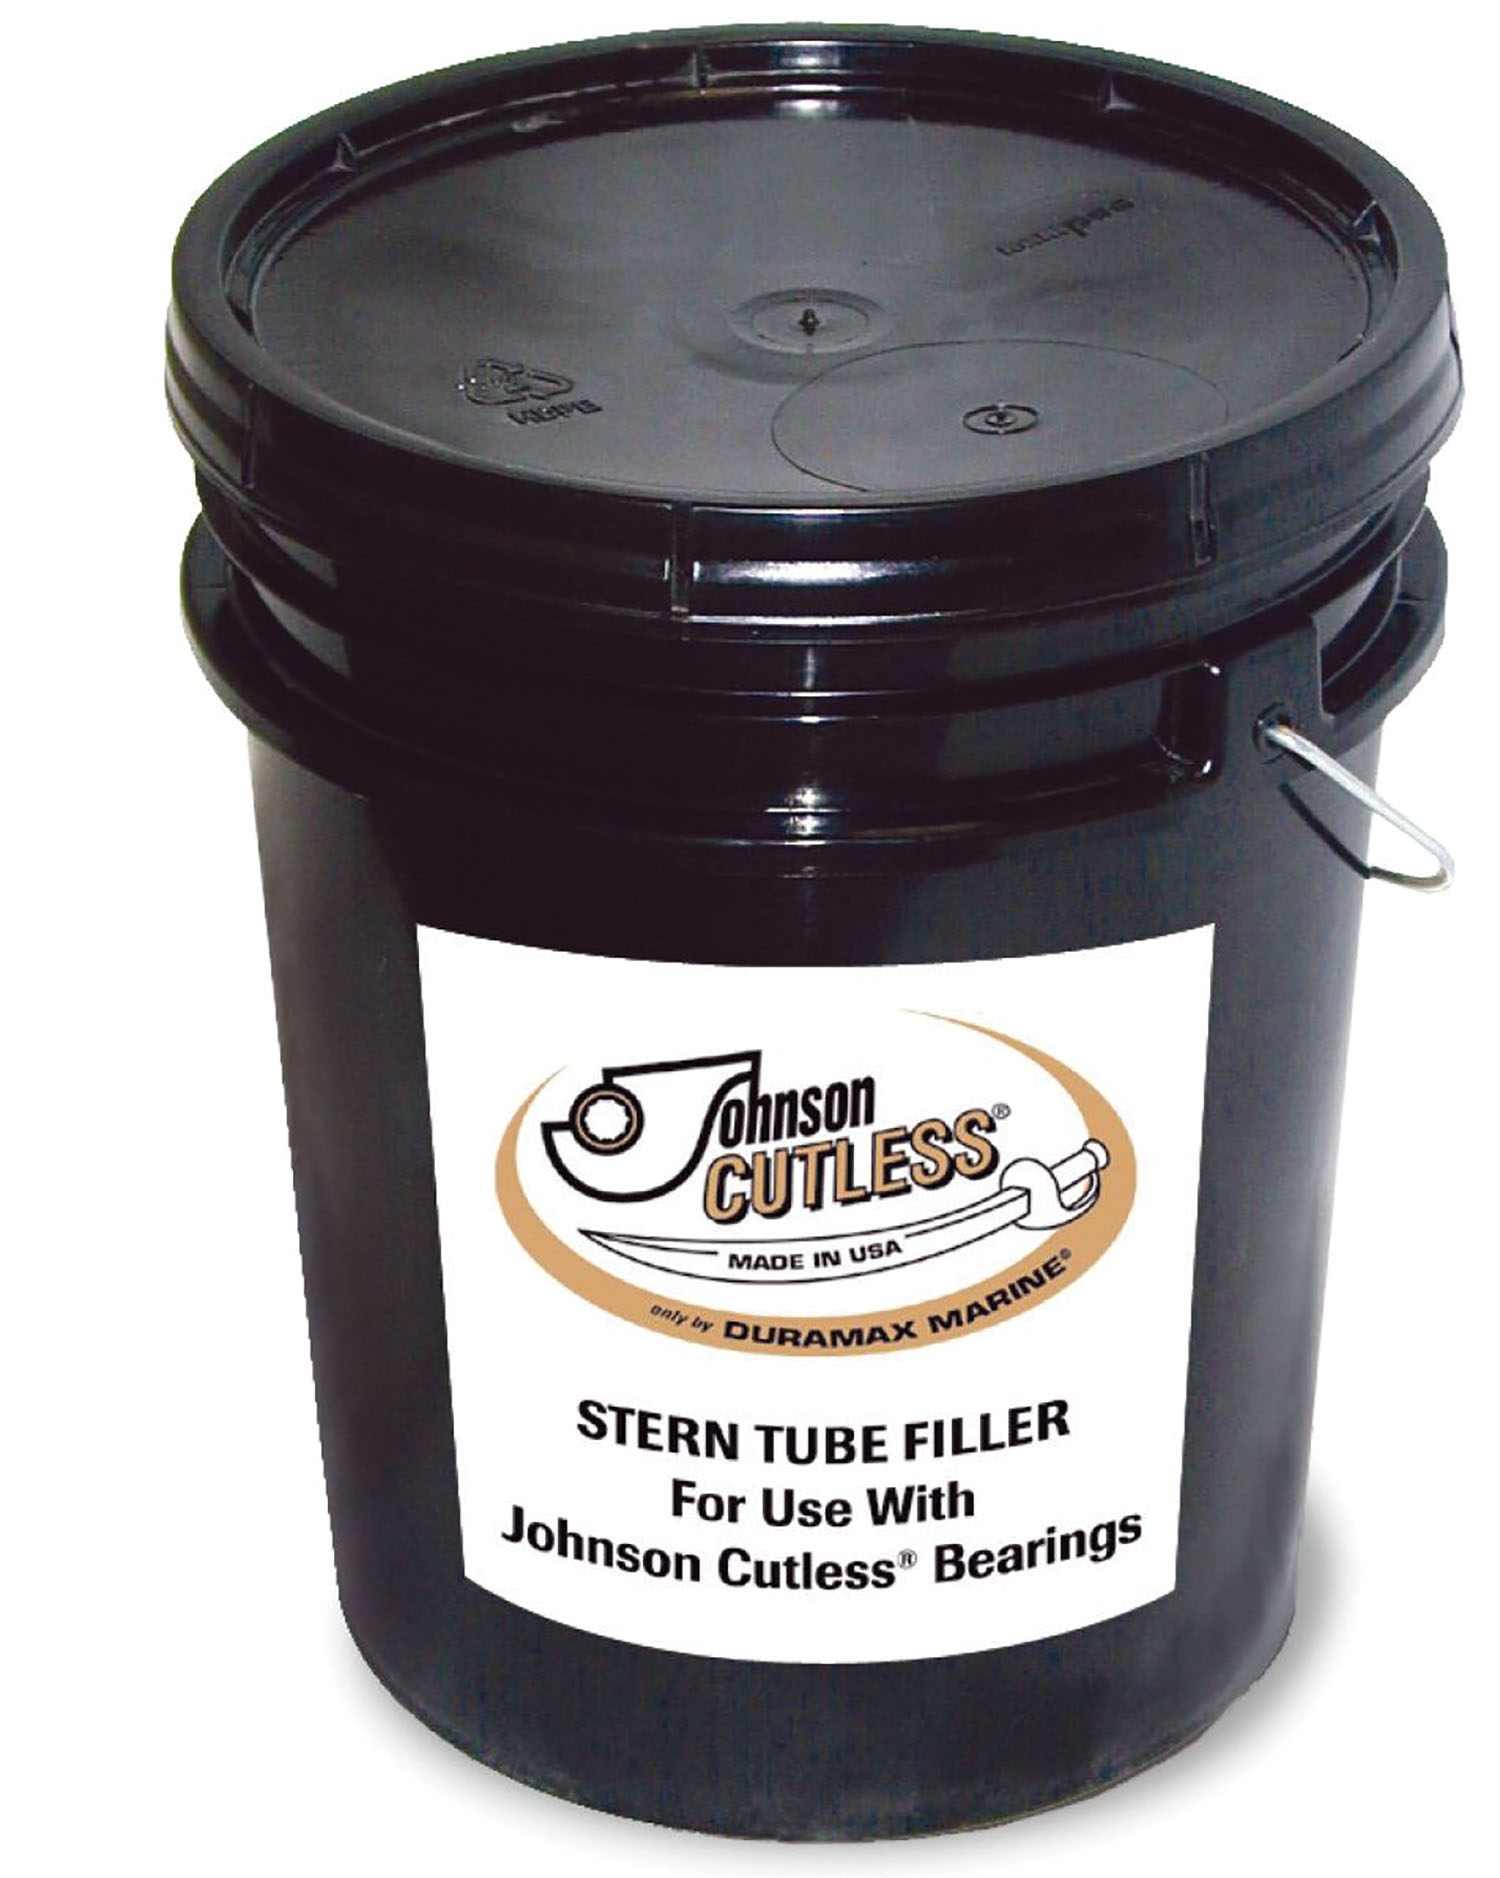 Humco Marine now carries Johnson cutless stern tube filler available in 5-gallon buckets.